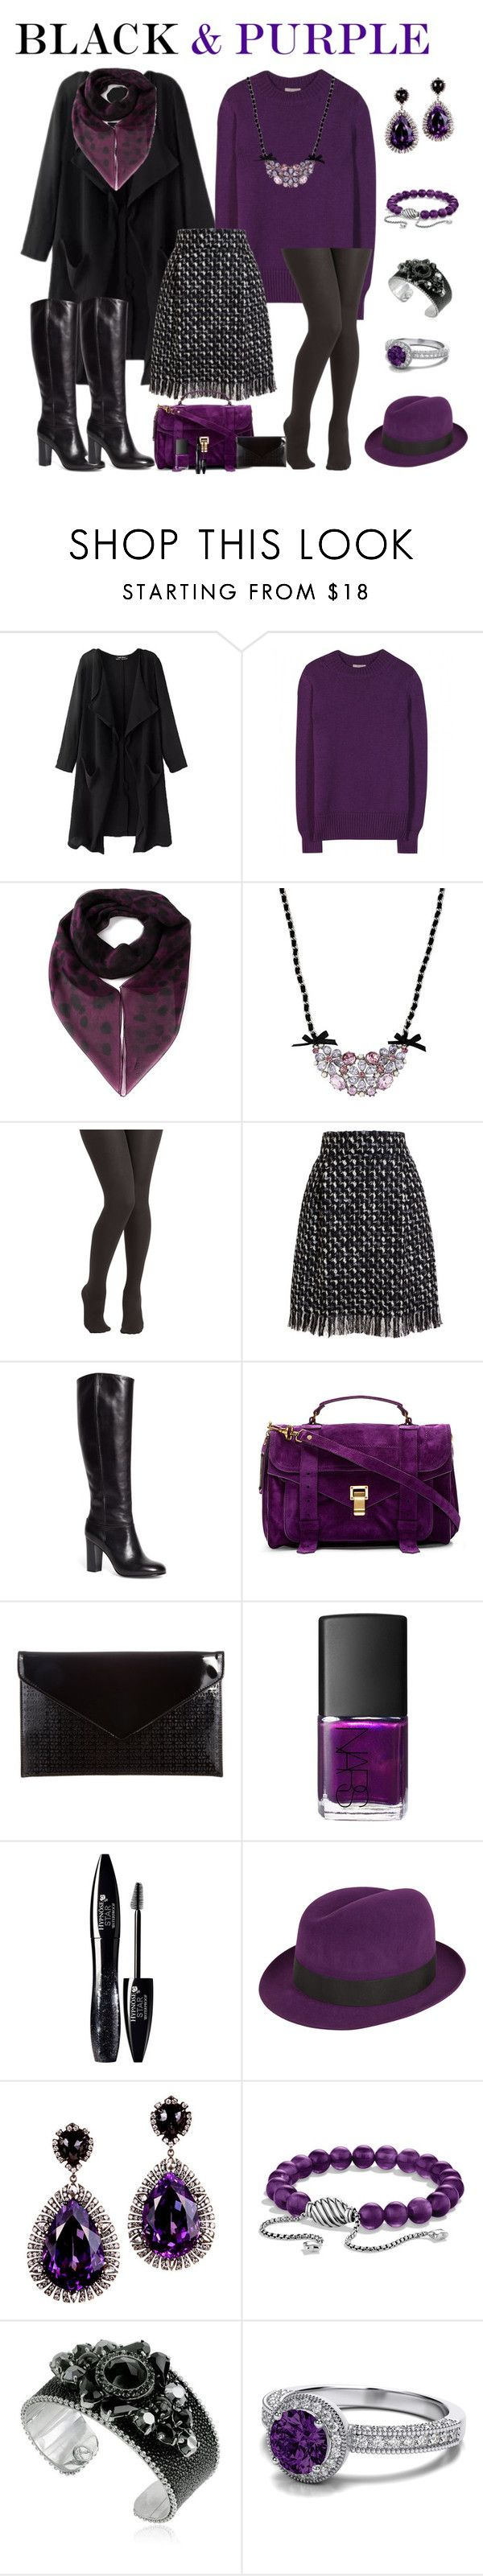 """""""Black/Purple Fall Outfit"""" by rainbowroad96 ❤ liked on Polyvore featuring Bottega Veneta, Alexander McQueen, Betsey Johnson, Lanvin, Brooks Brothers, Proenza Schouler, Atmos&Here, NARS Cosmetics, Lancôme and Christys'"""